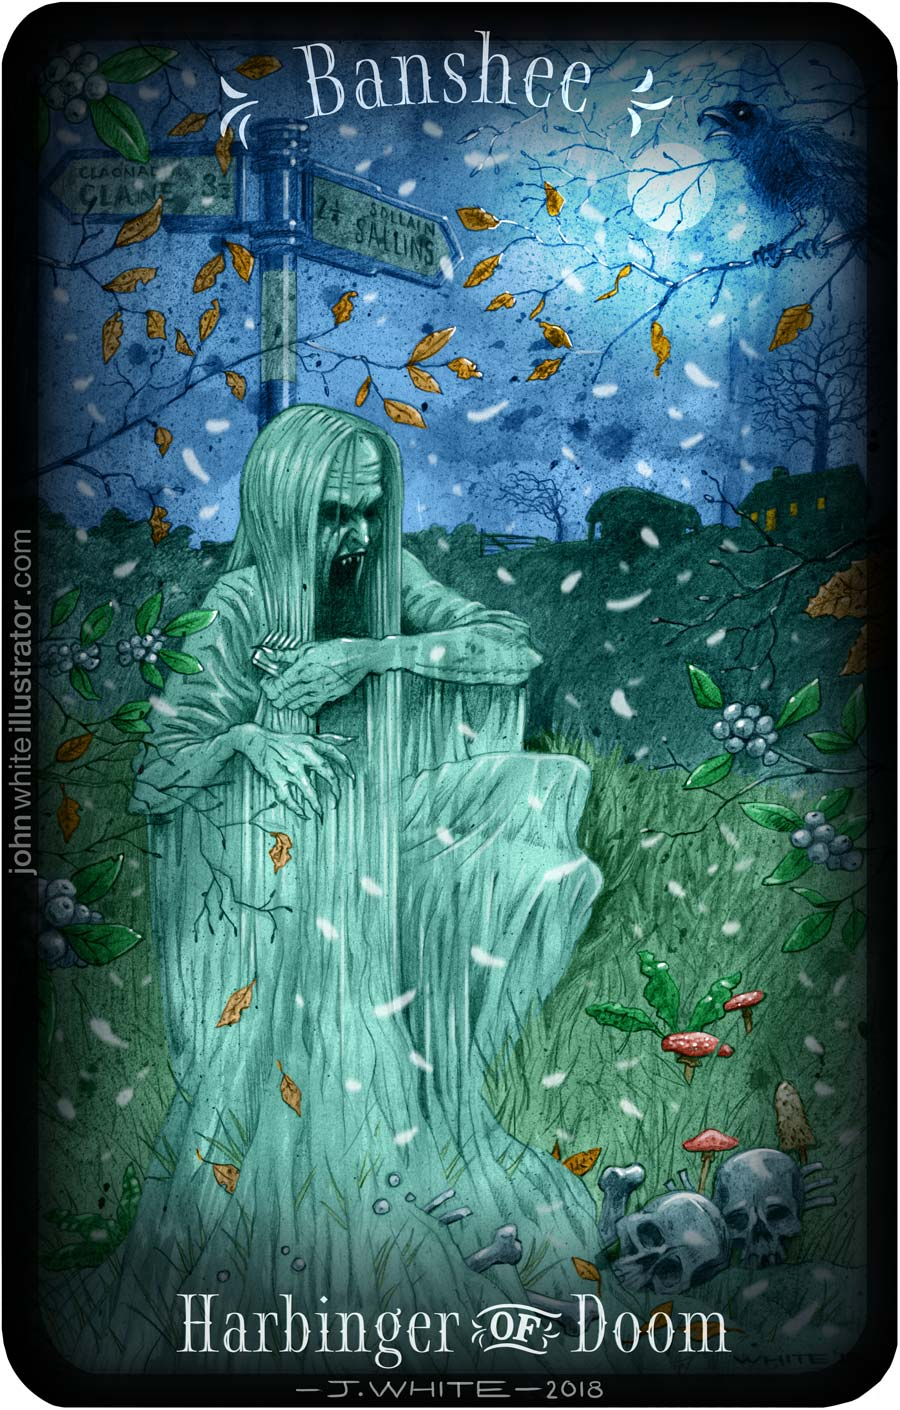 scary horror colour book illustration of irish banshee